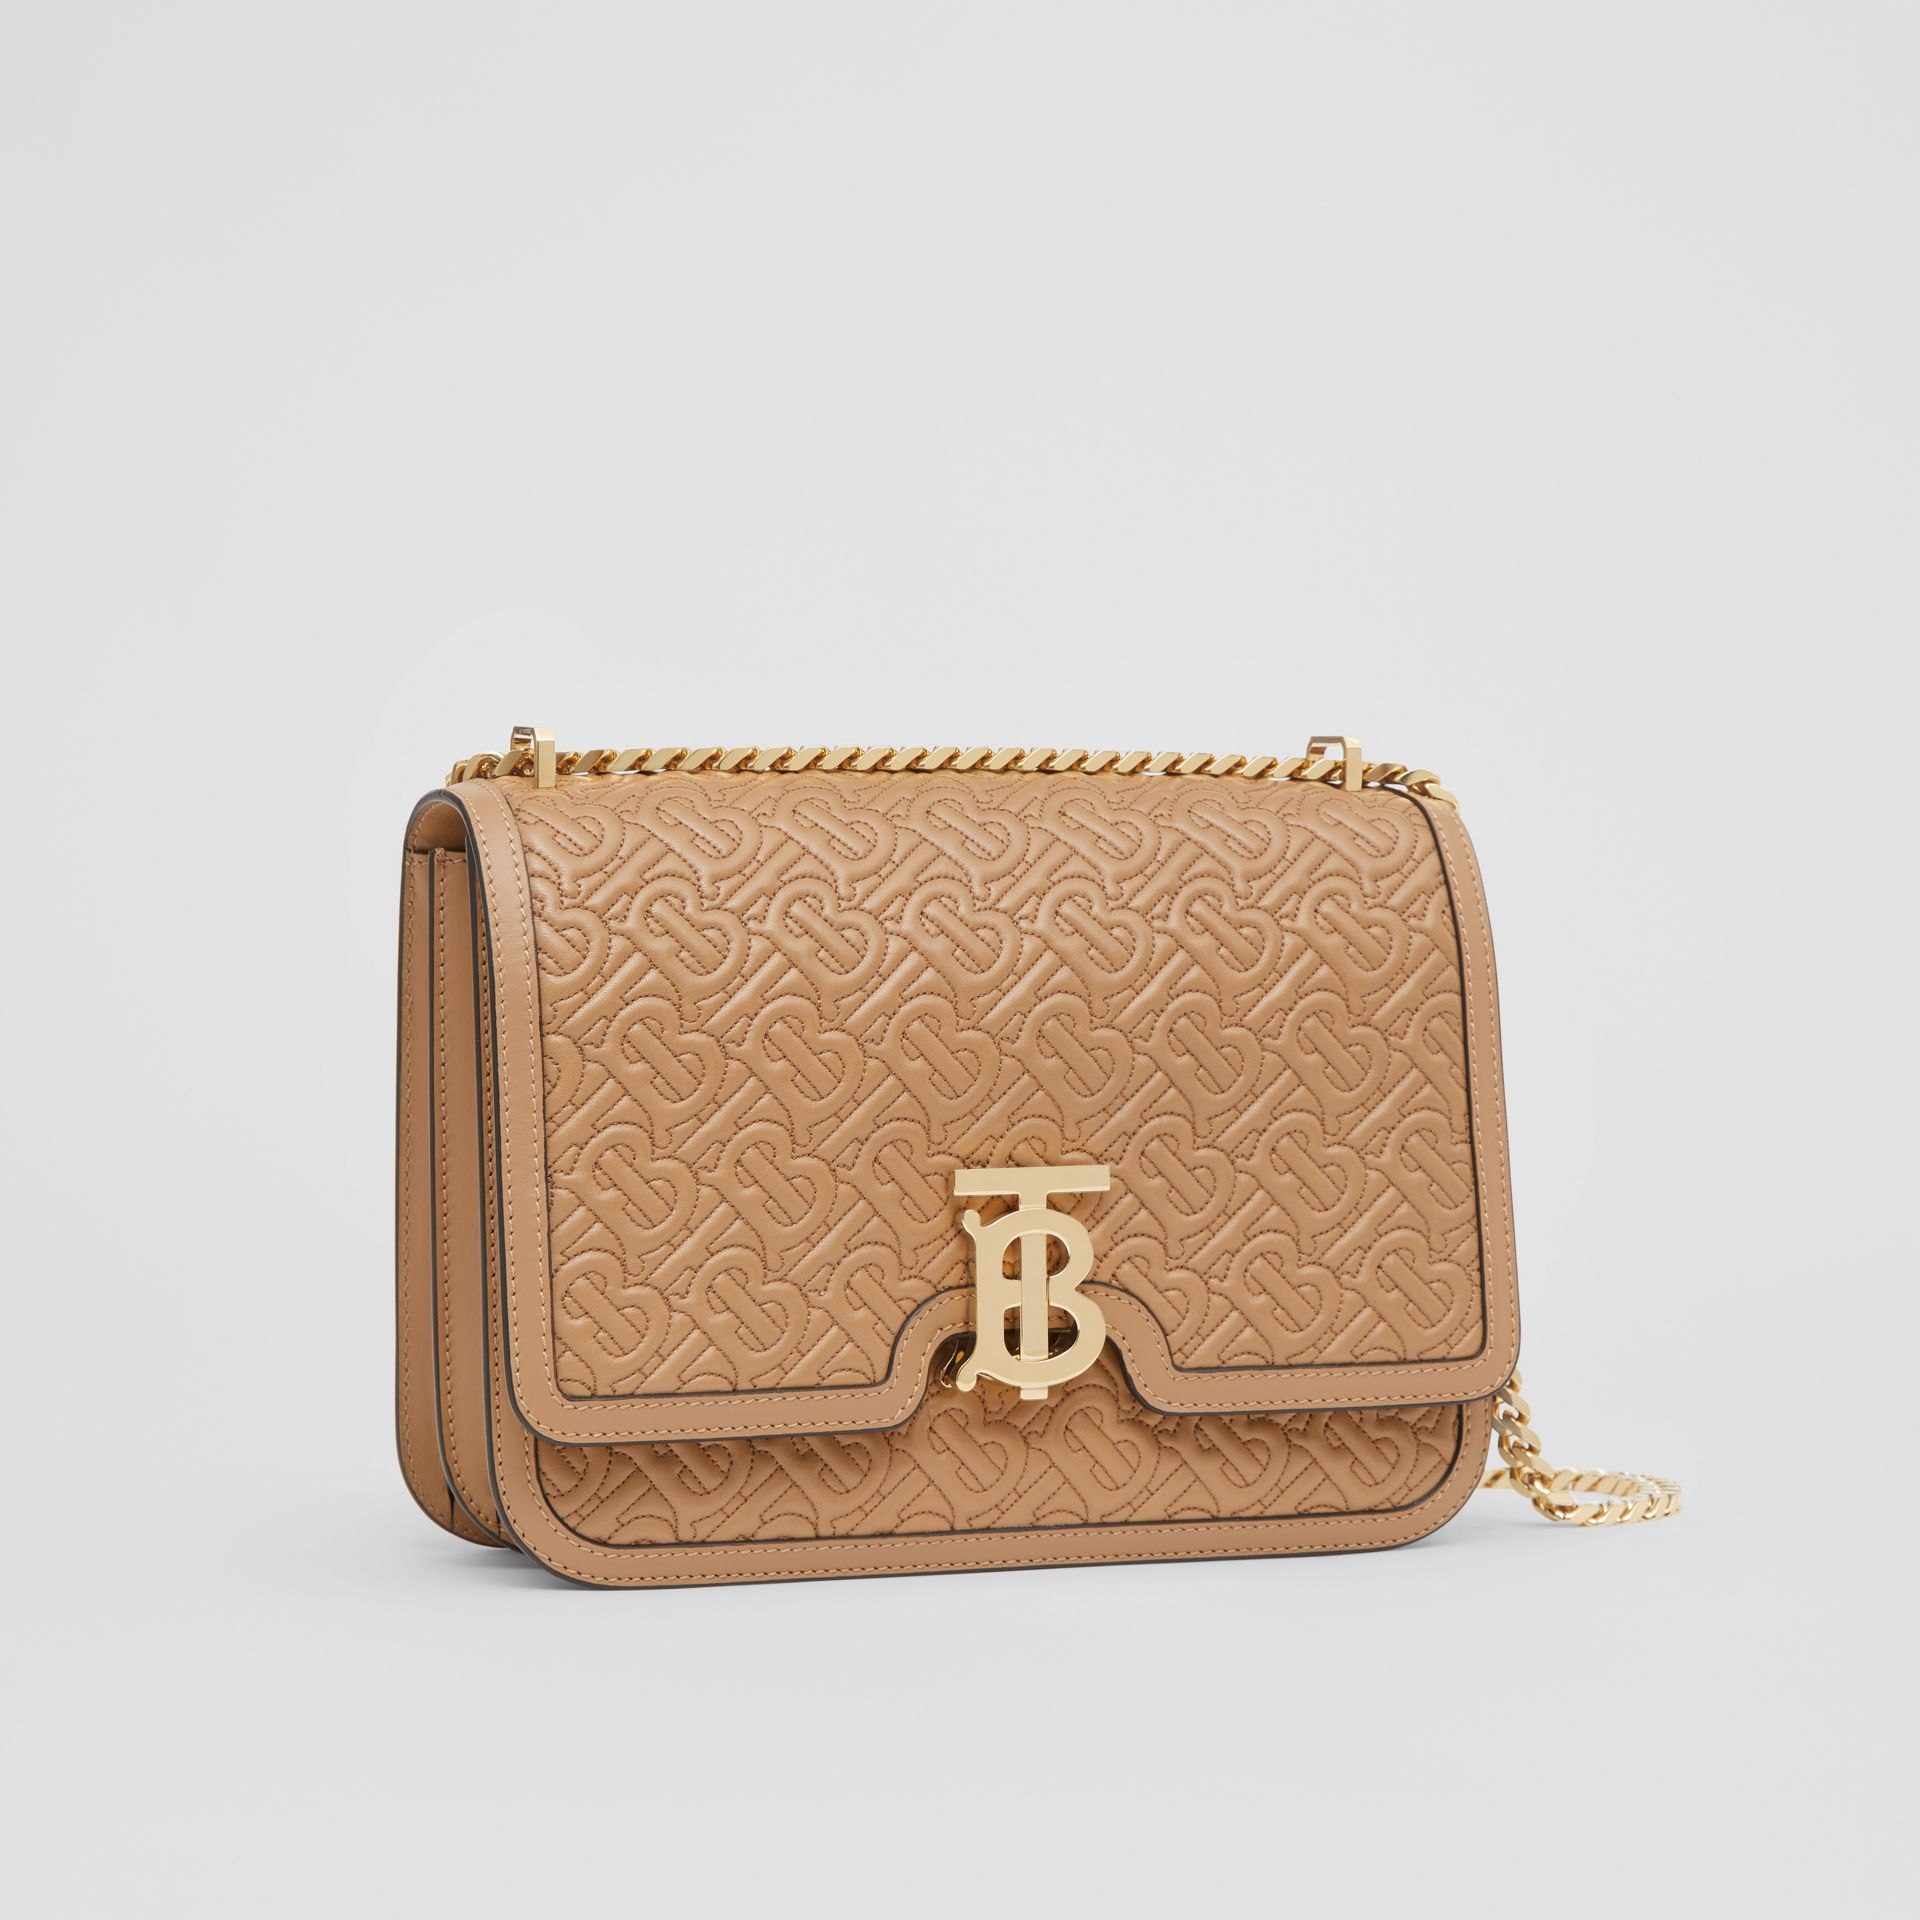 Medium Quilted Monogram Lambskin TB Bag in Honey - Women | Burberry Hong Kong - gallery image 6